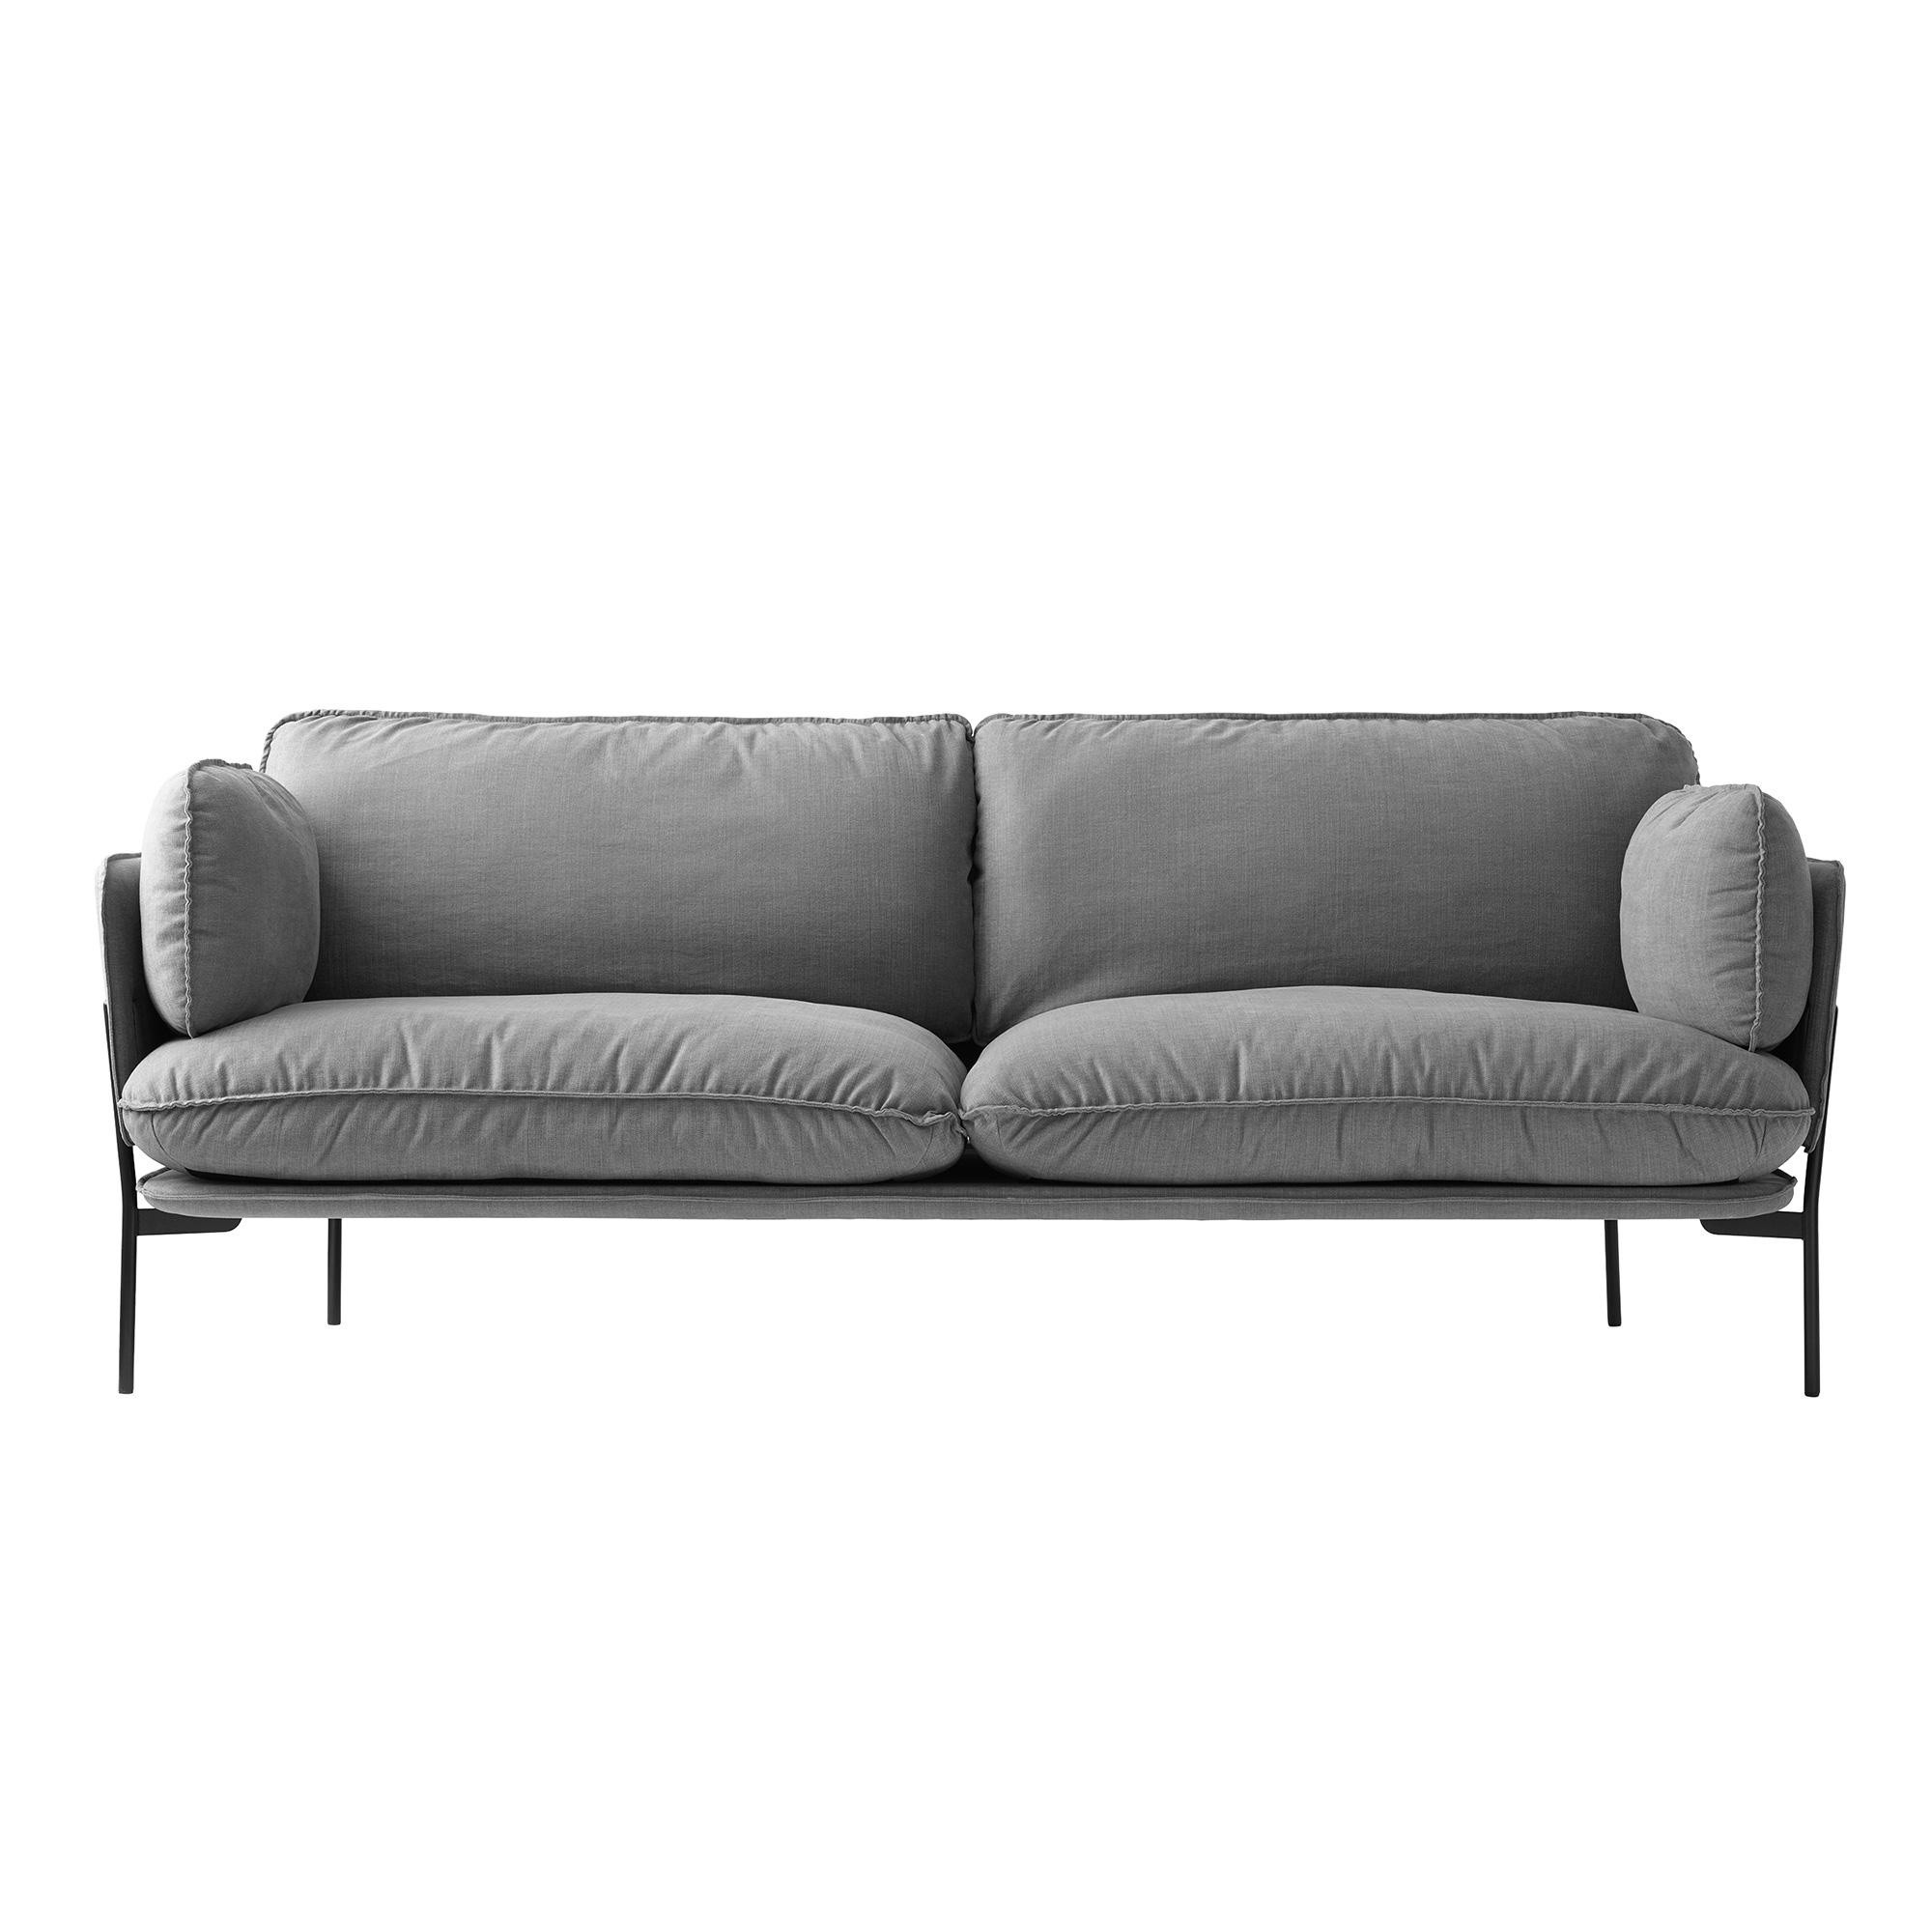 &tradition Cloud LN3.2 3-Seater Sofa | AmbienteDirect